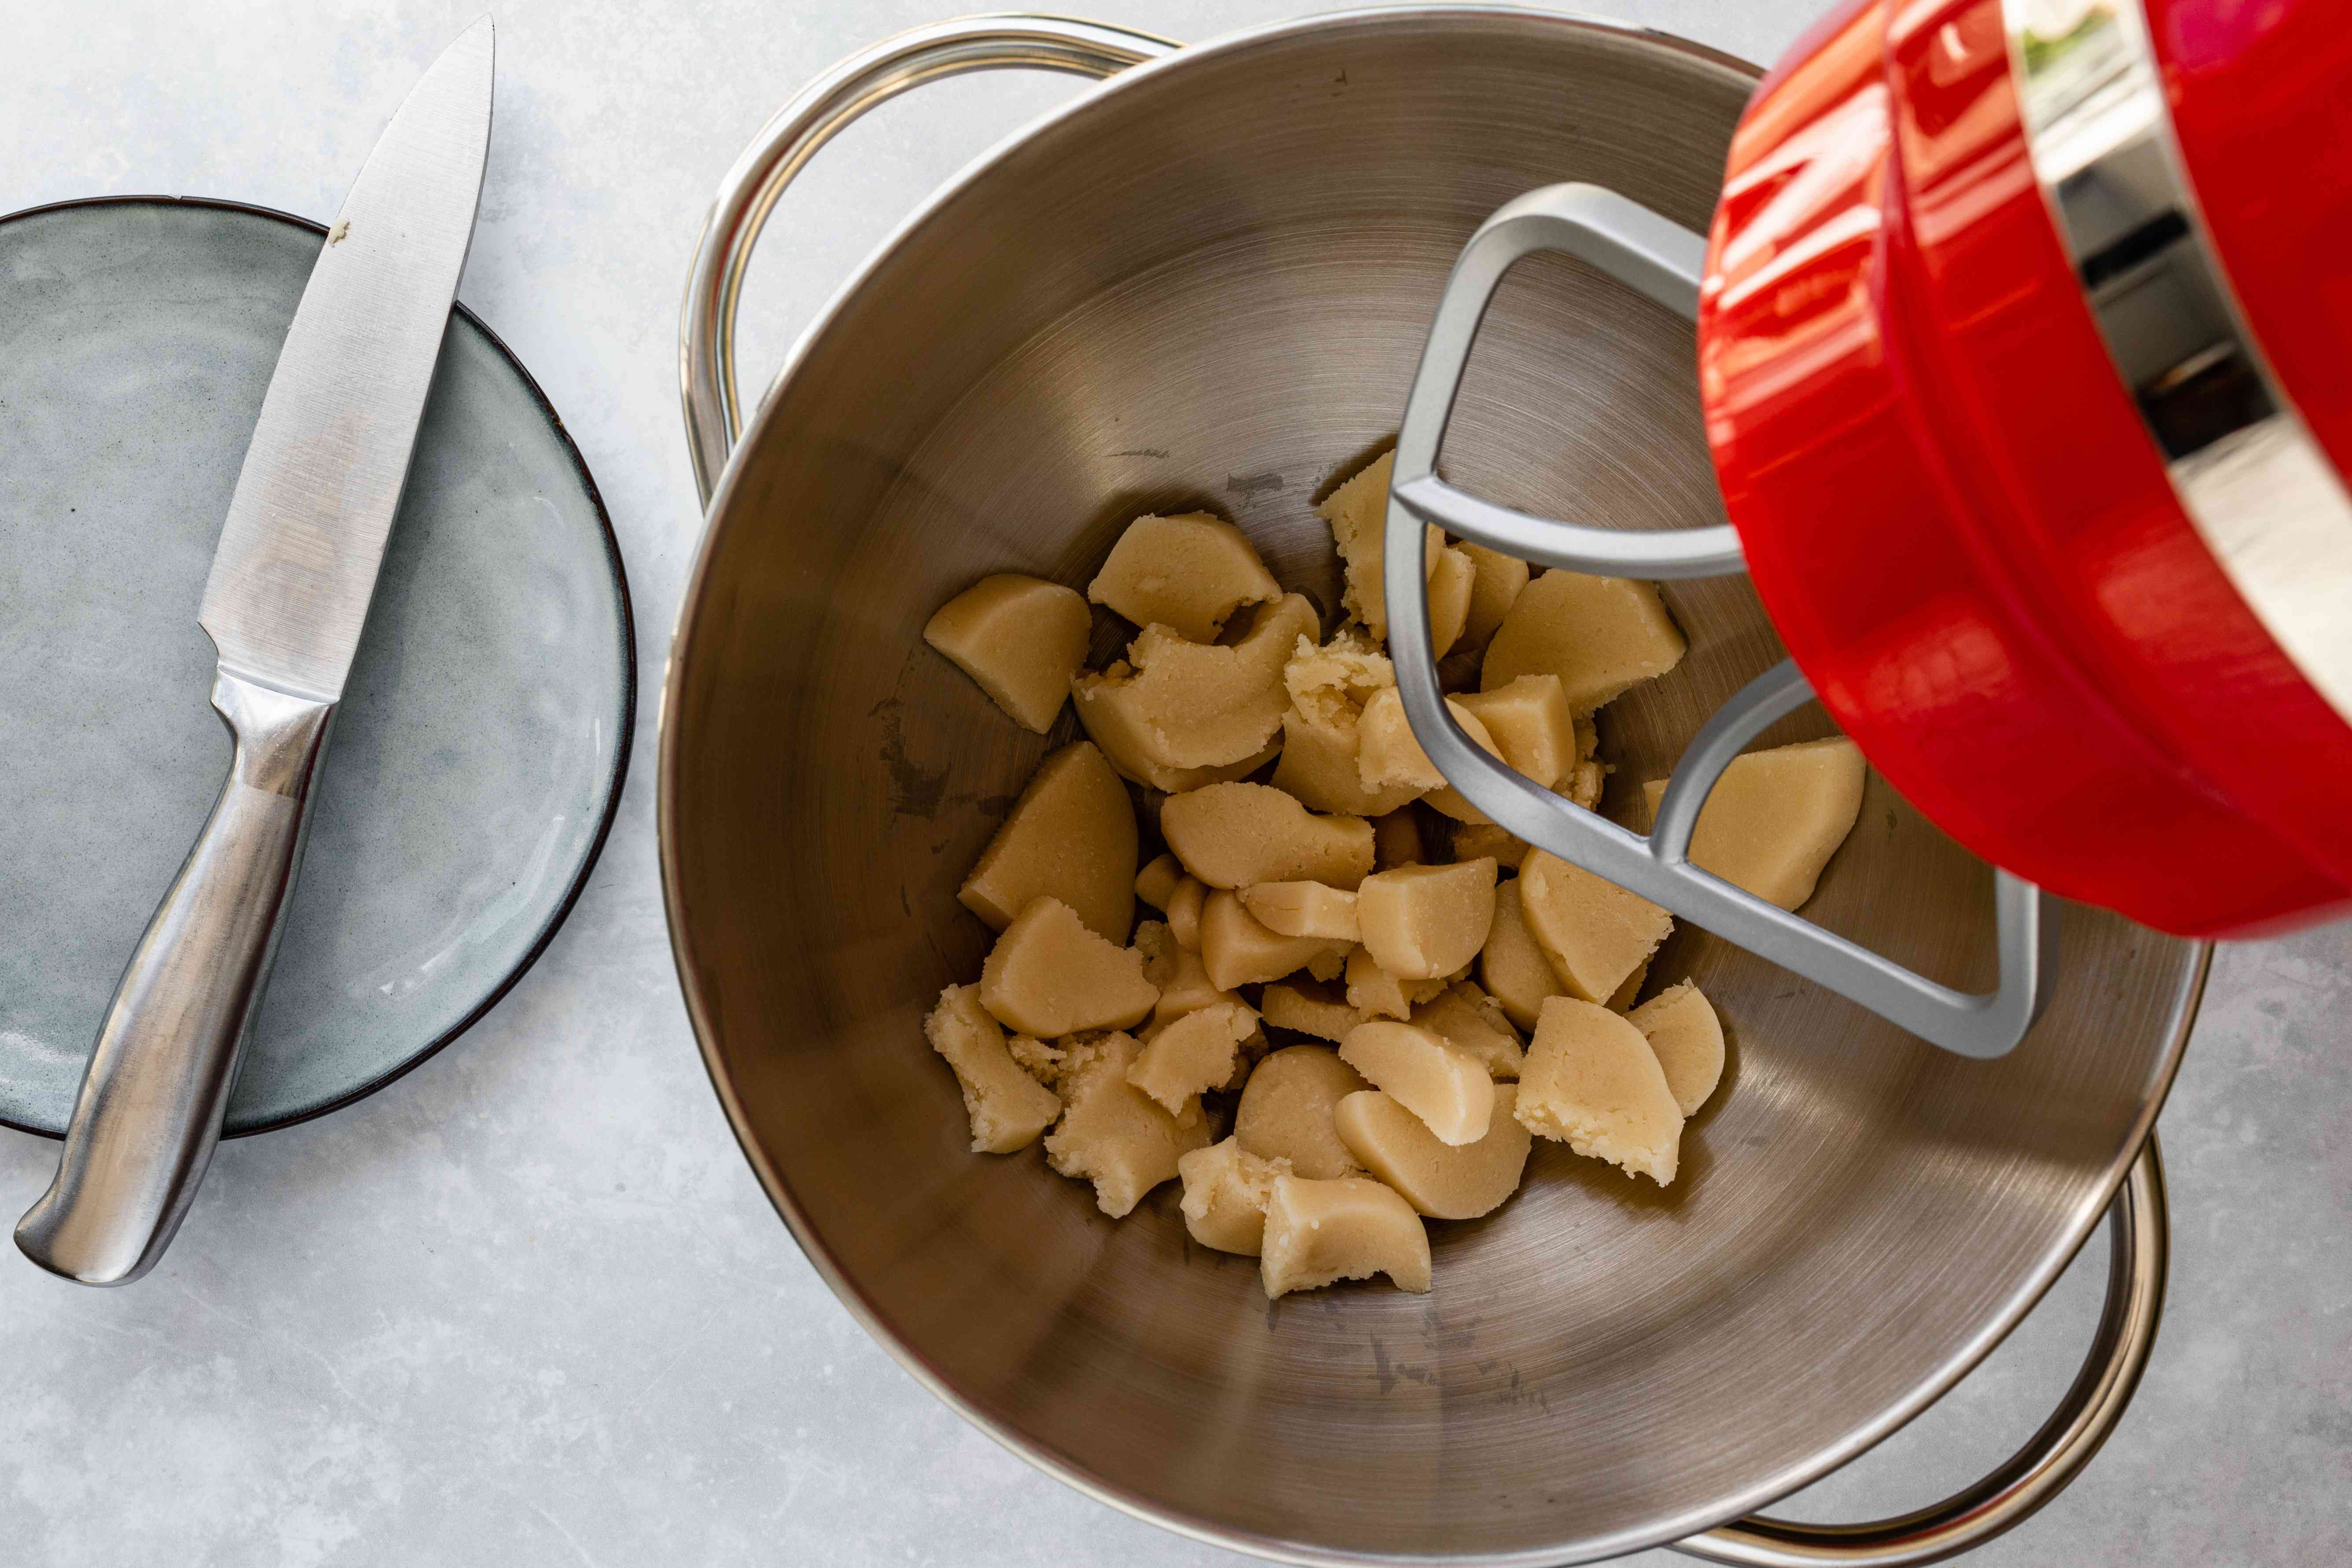 Coarsely chopped almond paste